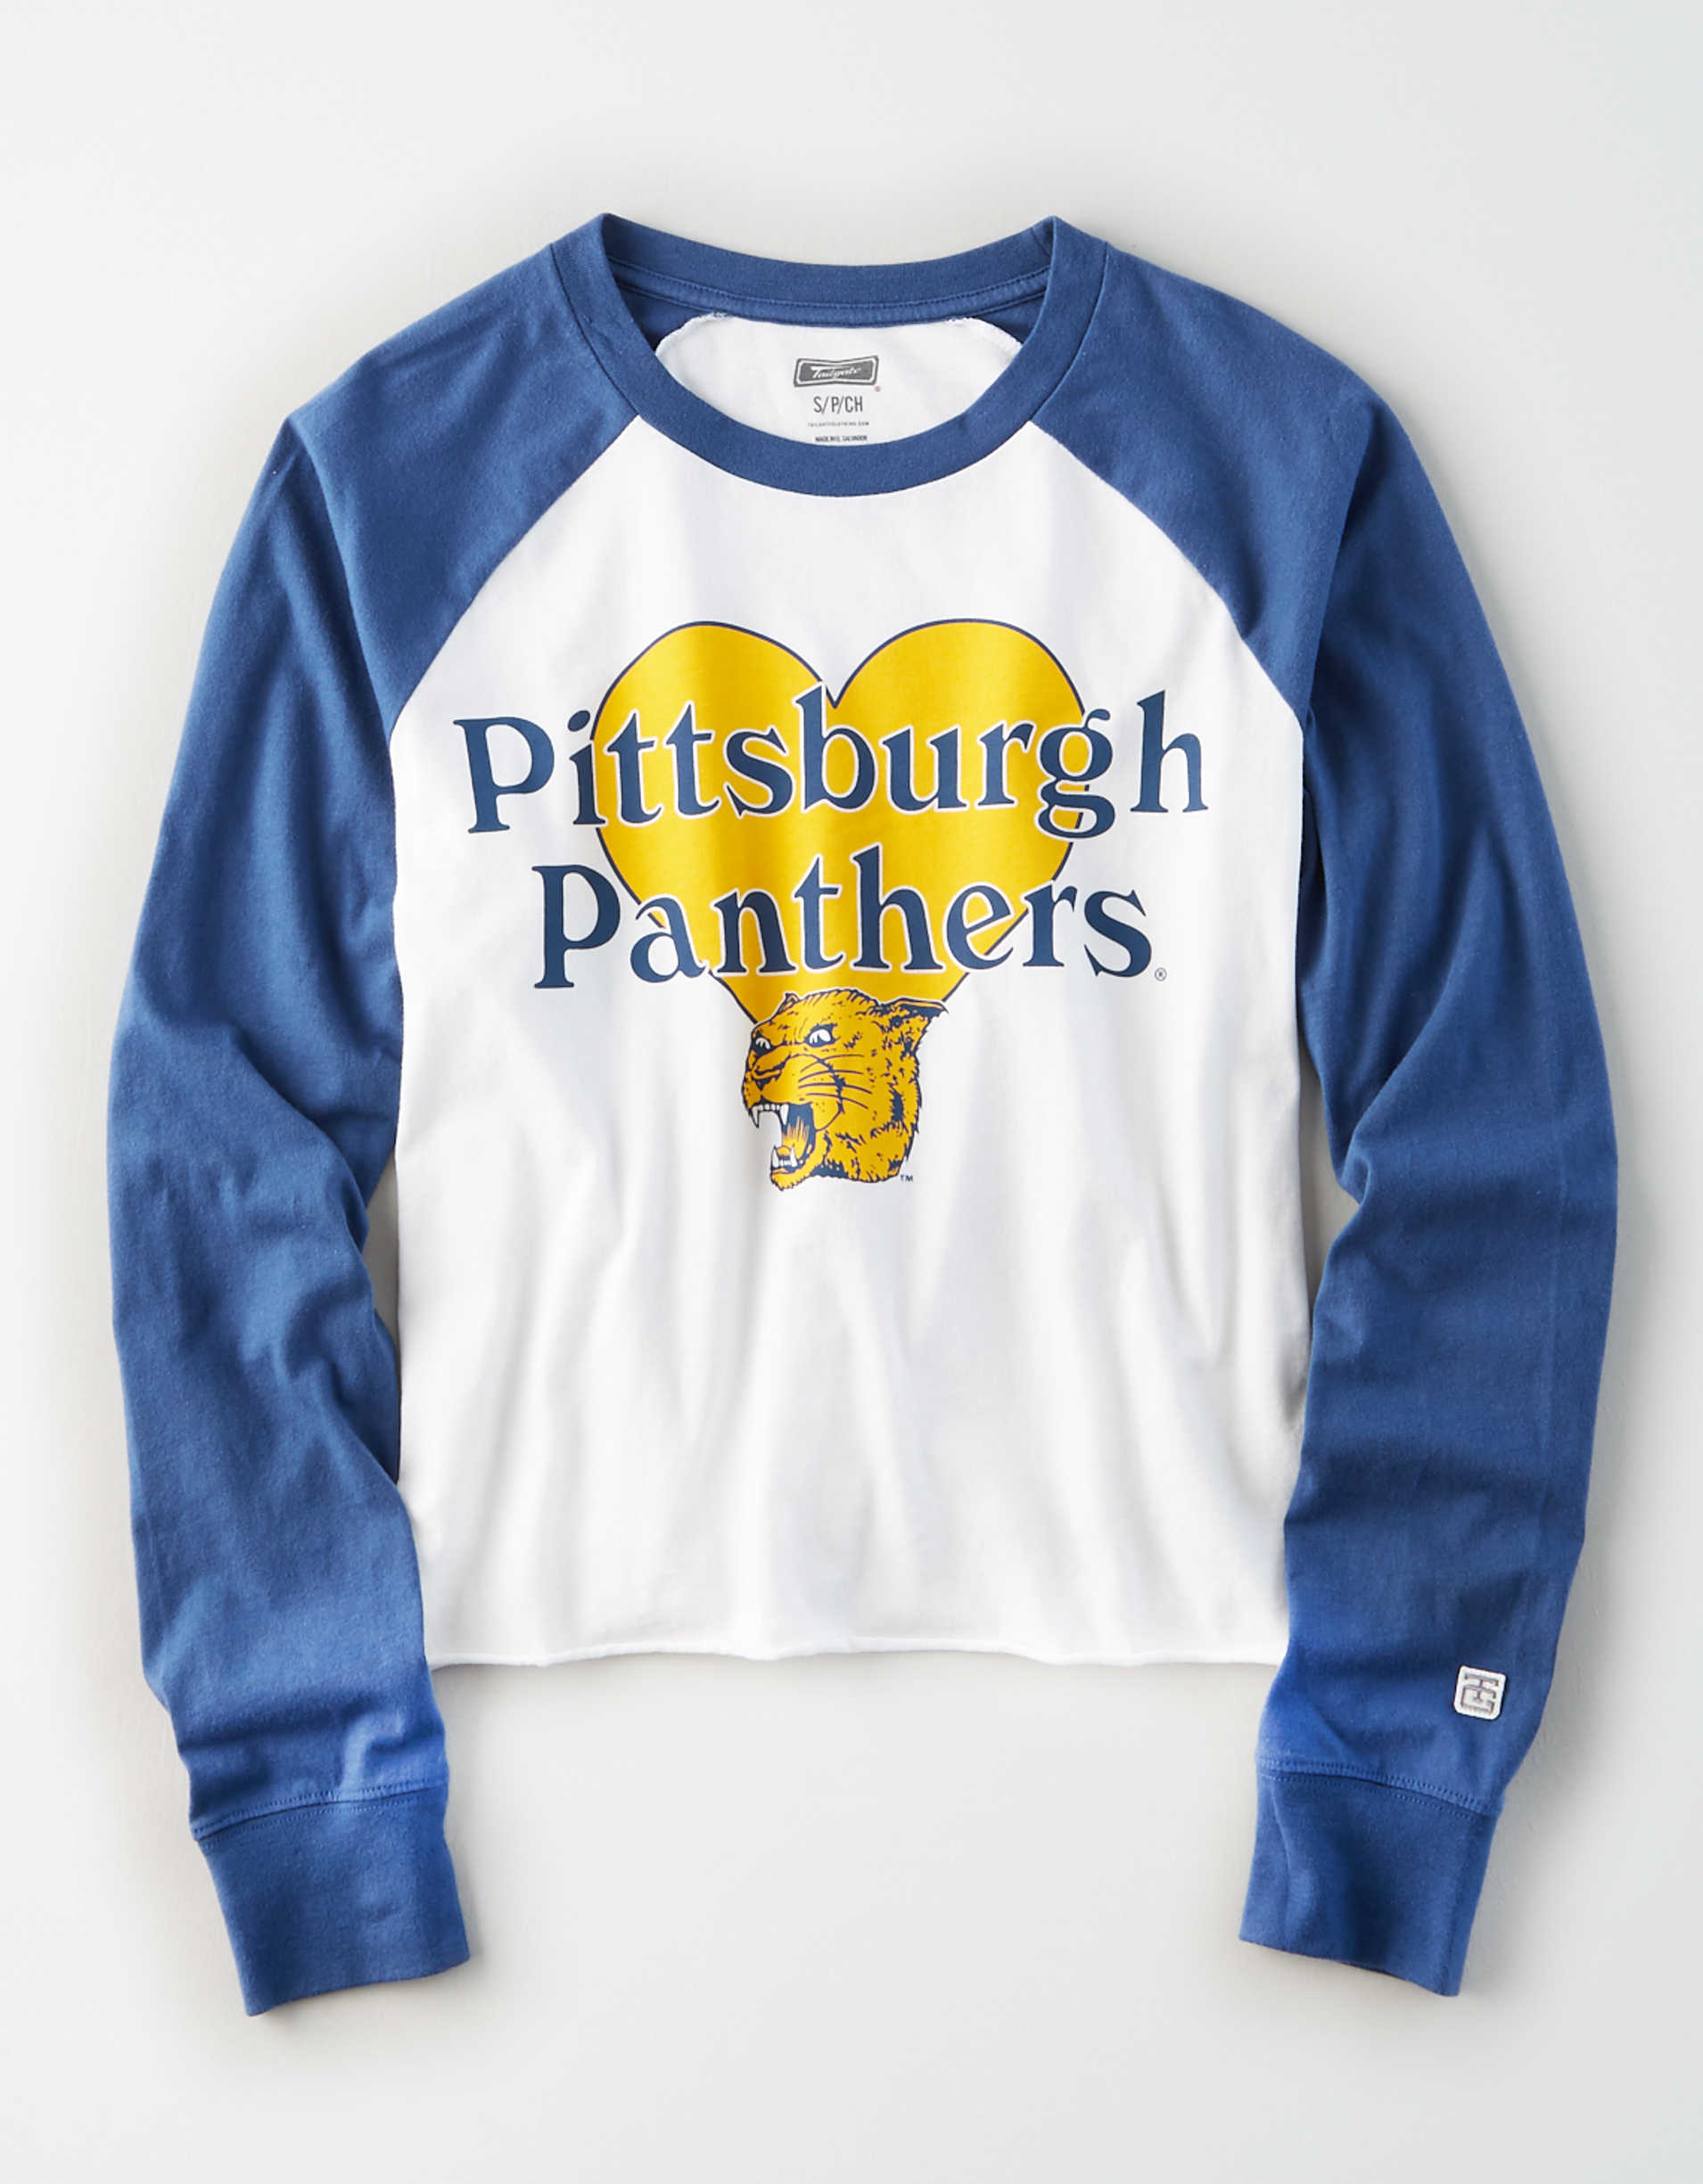 Tailgate Women's Pitt Panthers Baseball Shirt